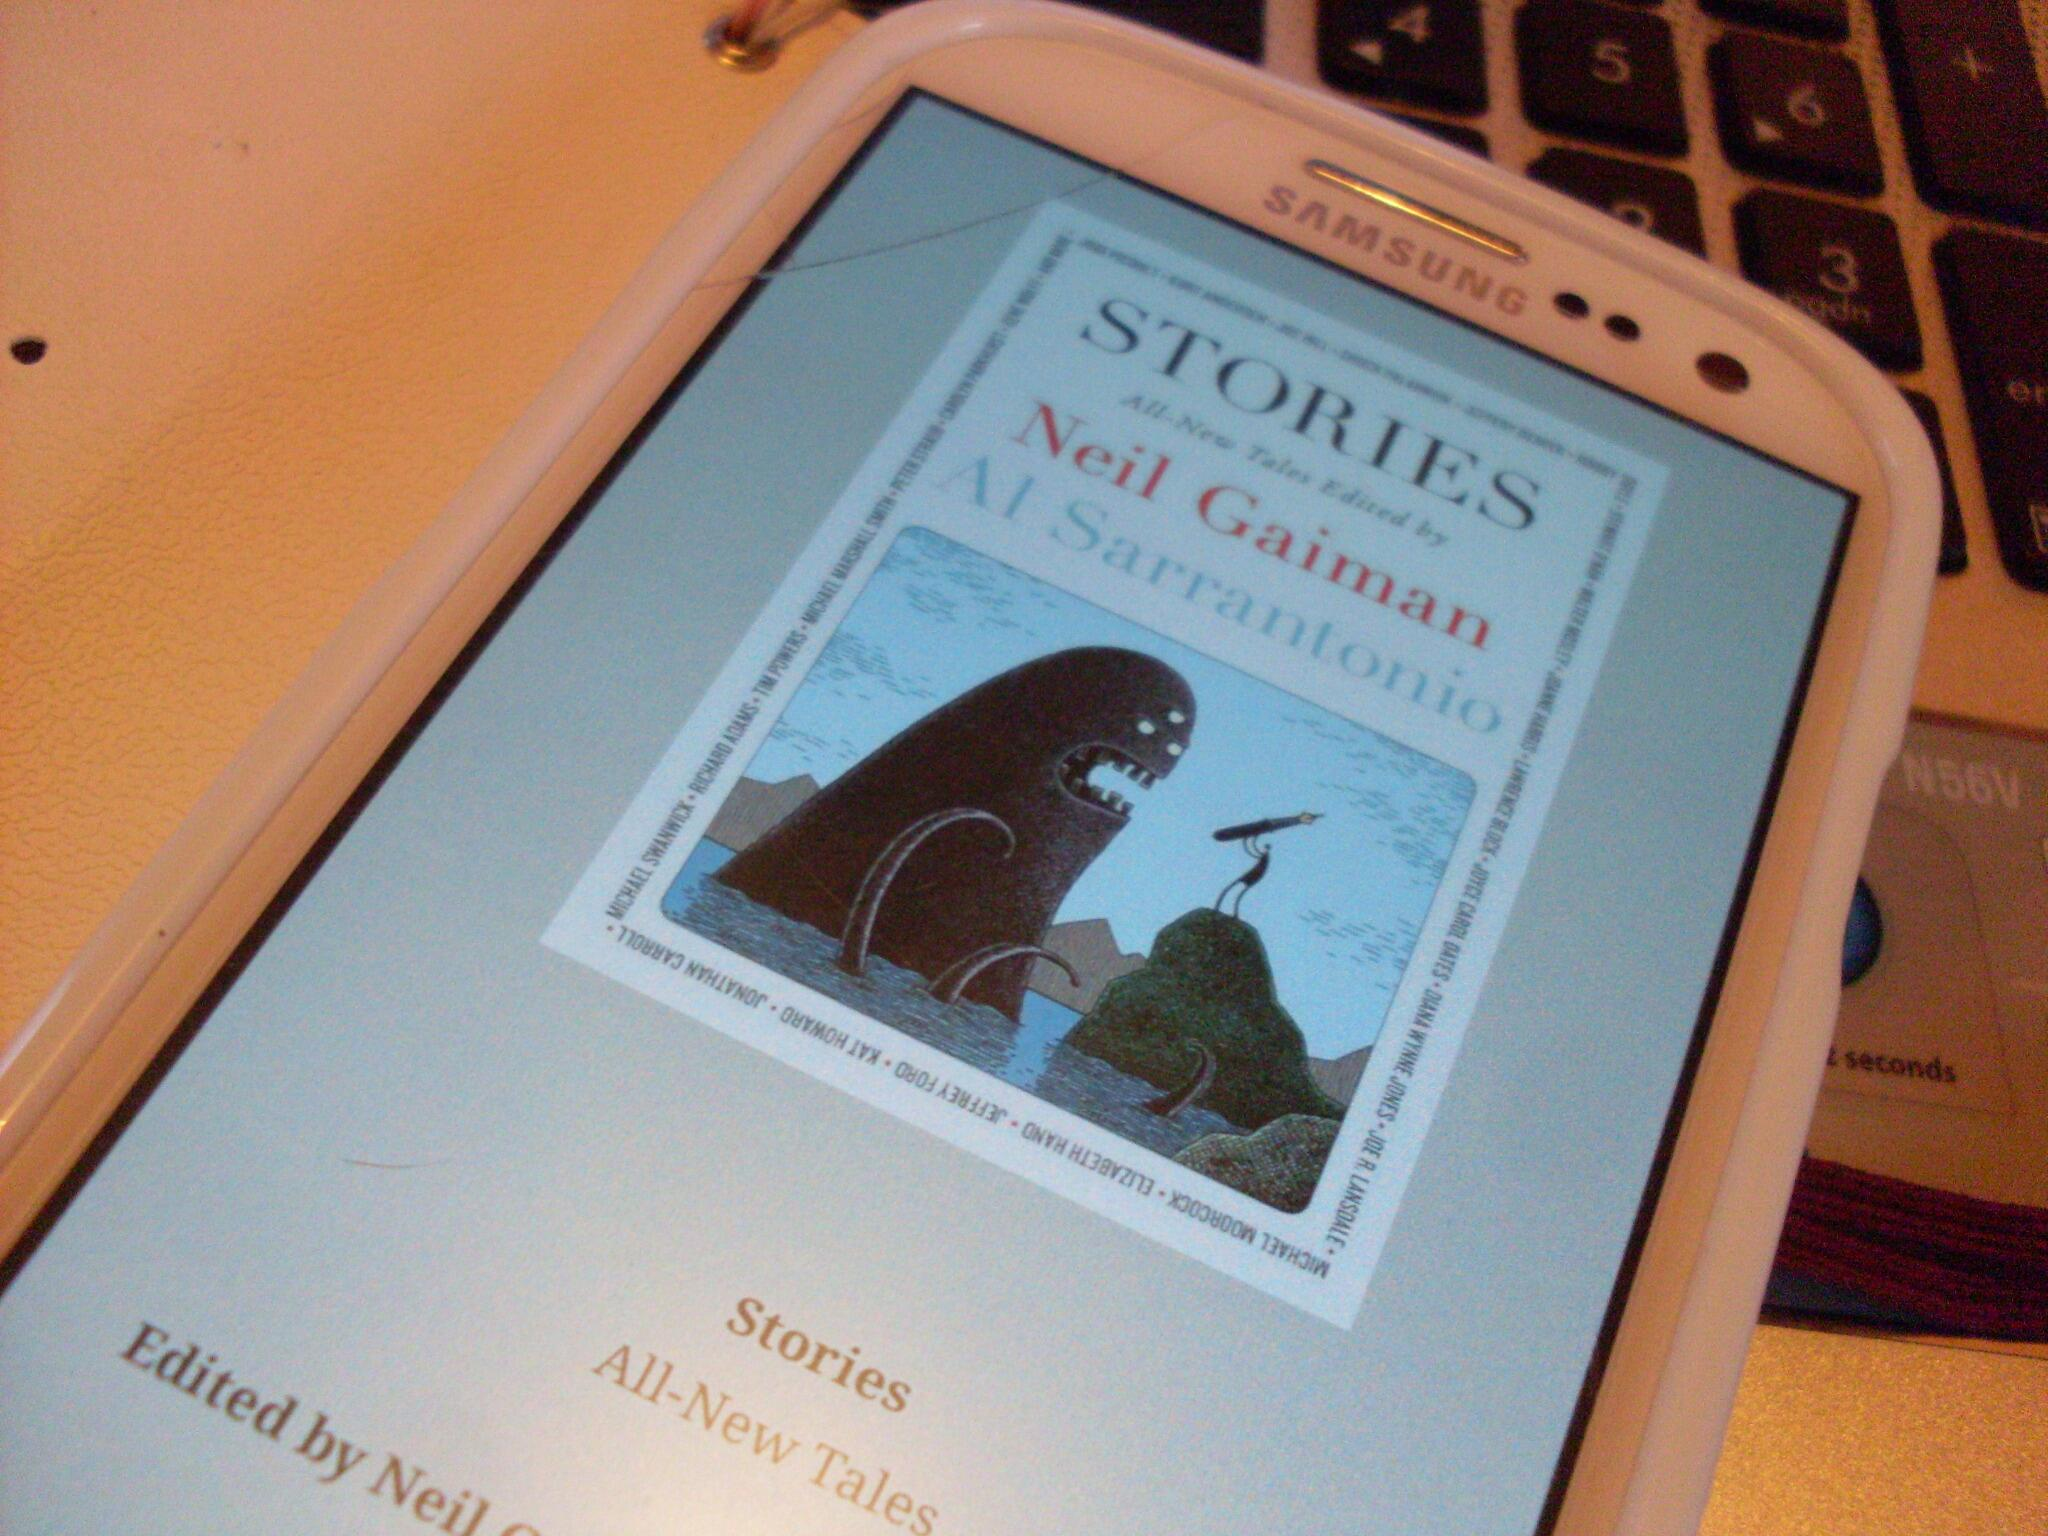 Neil Gaiman, Al Sarrantonio: Stories